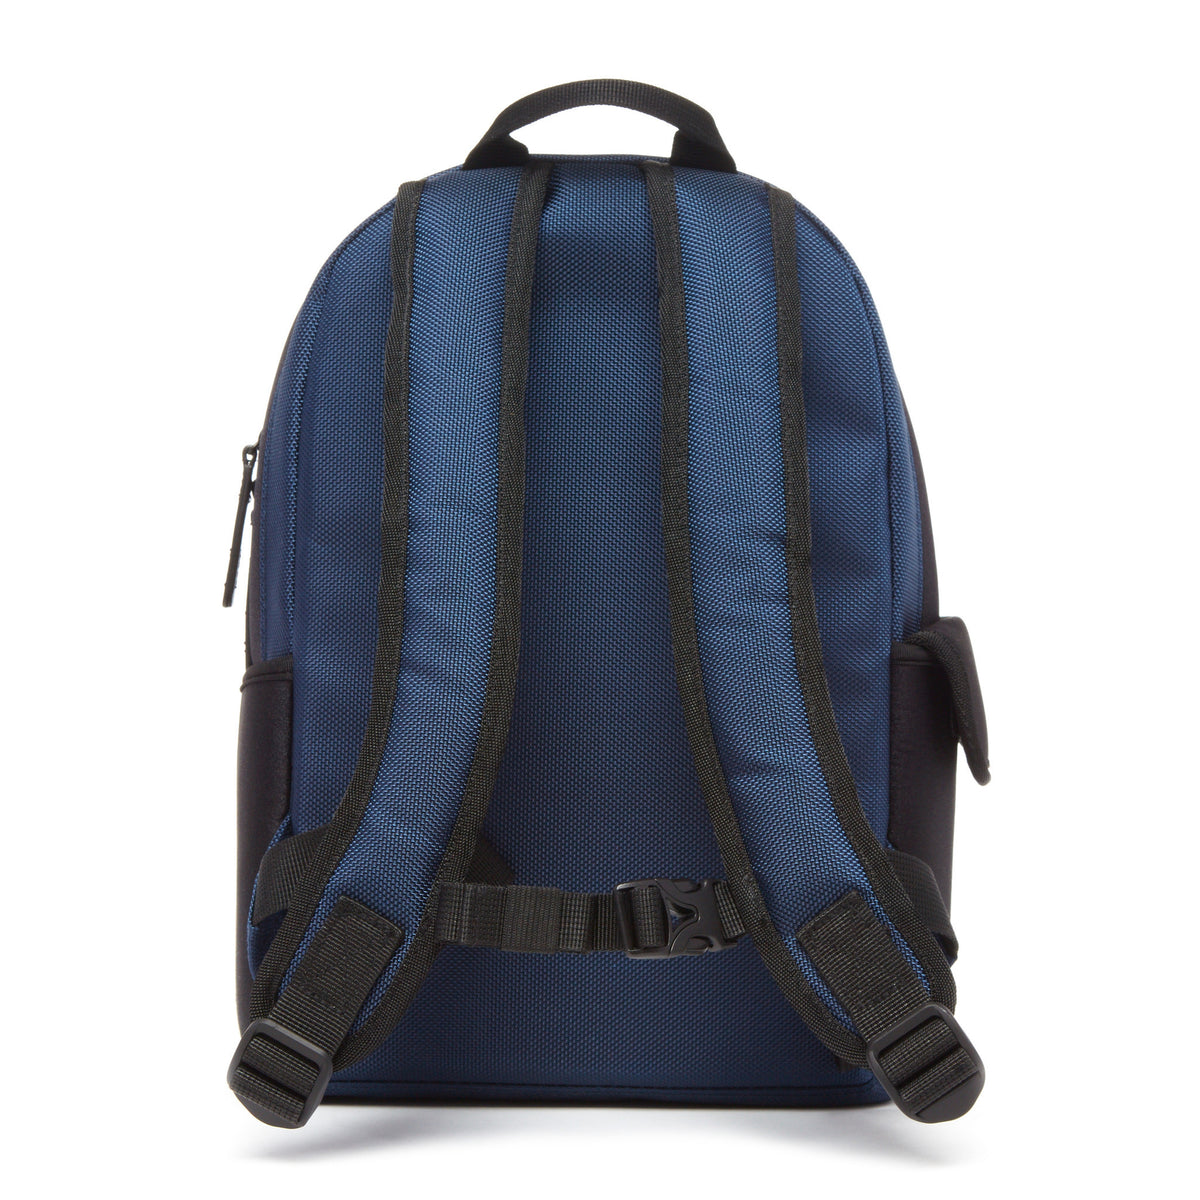 Lexdray: San Diego Pack - Navy (14106-BN) back